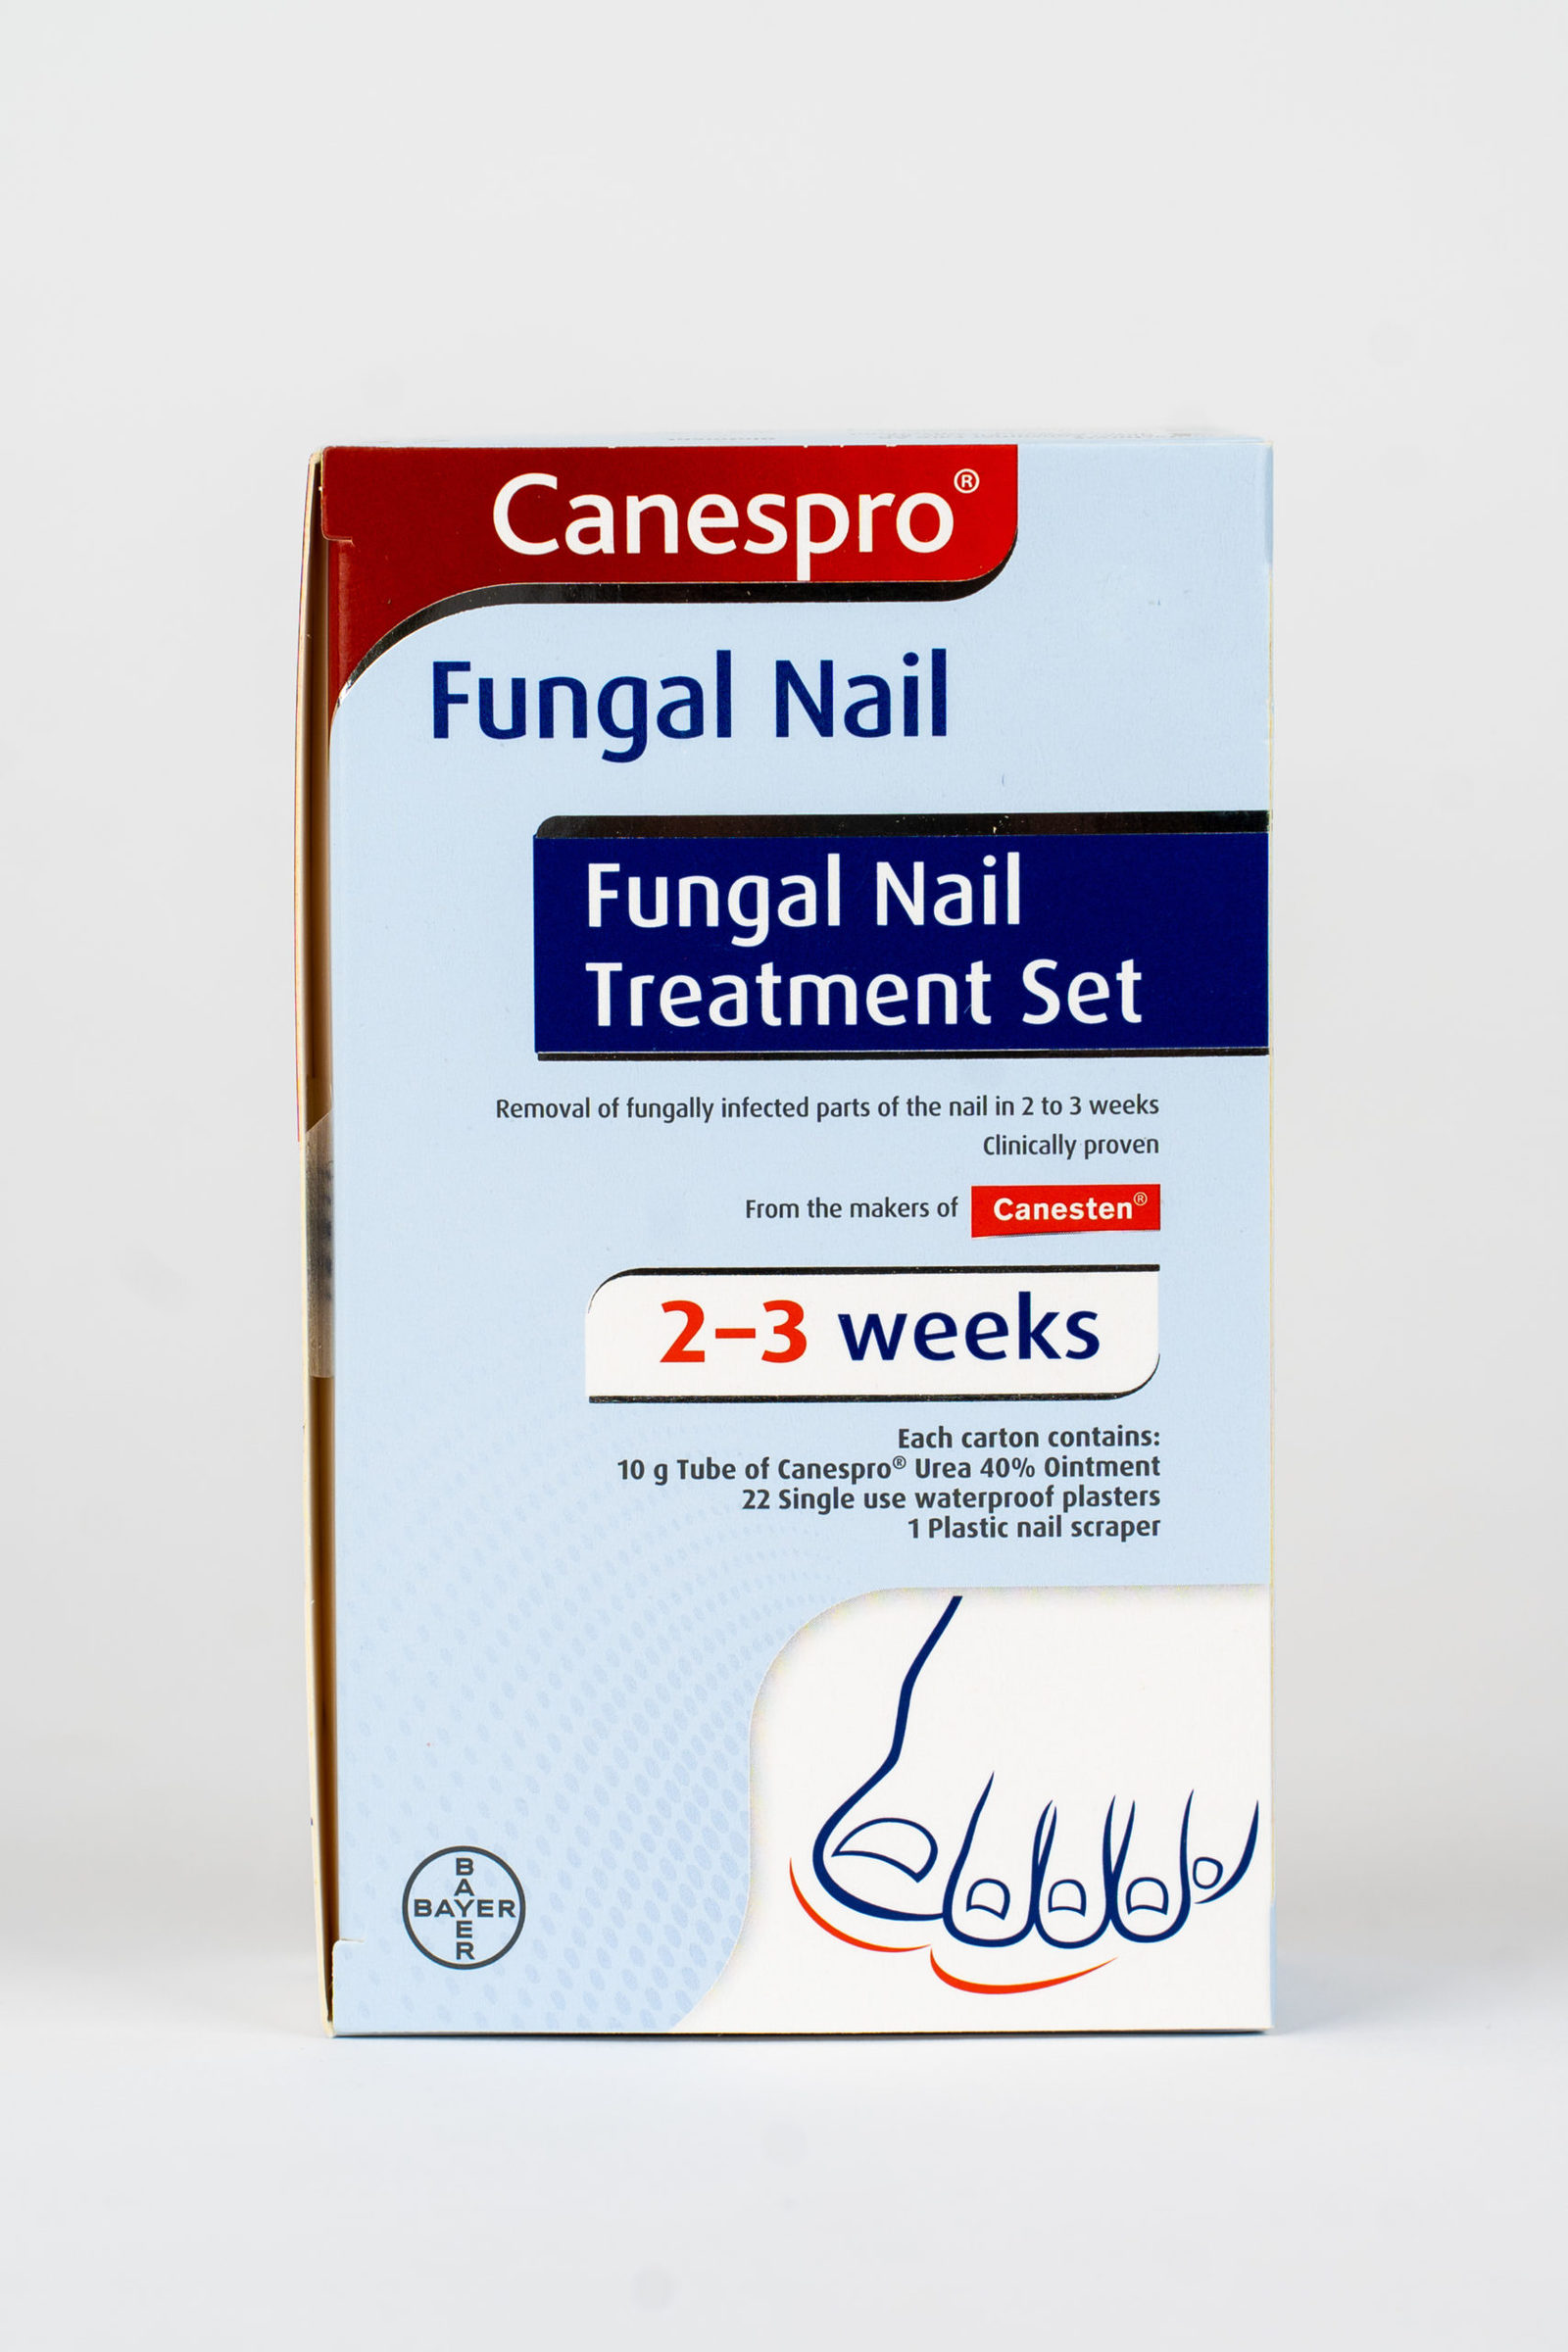 Canespro fungal nail